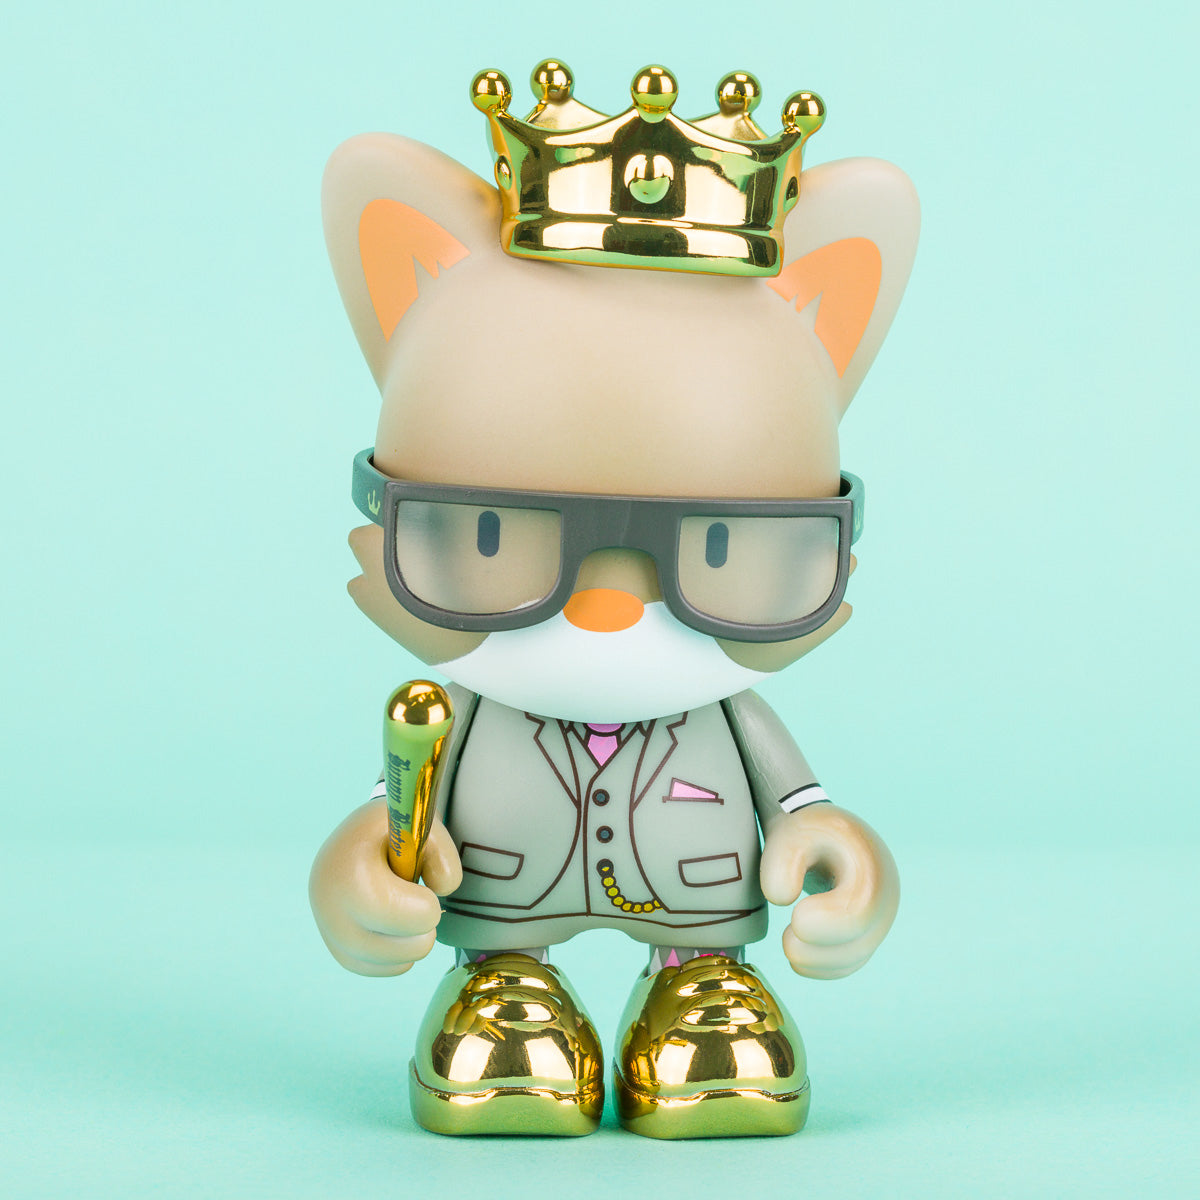 King Janky The First Superplastic Vinyl Art Toy